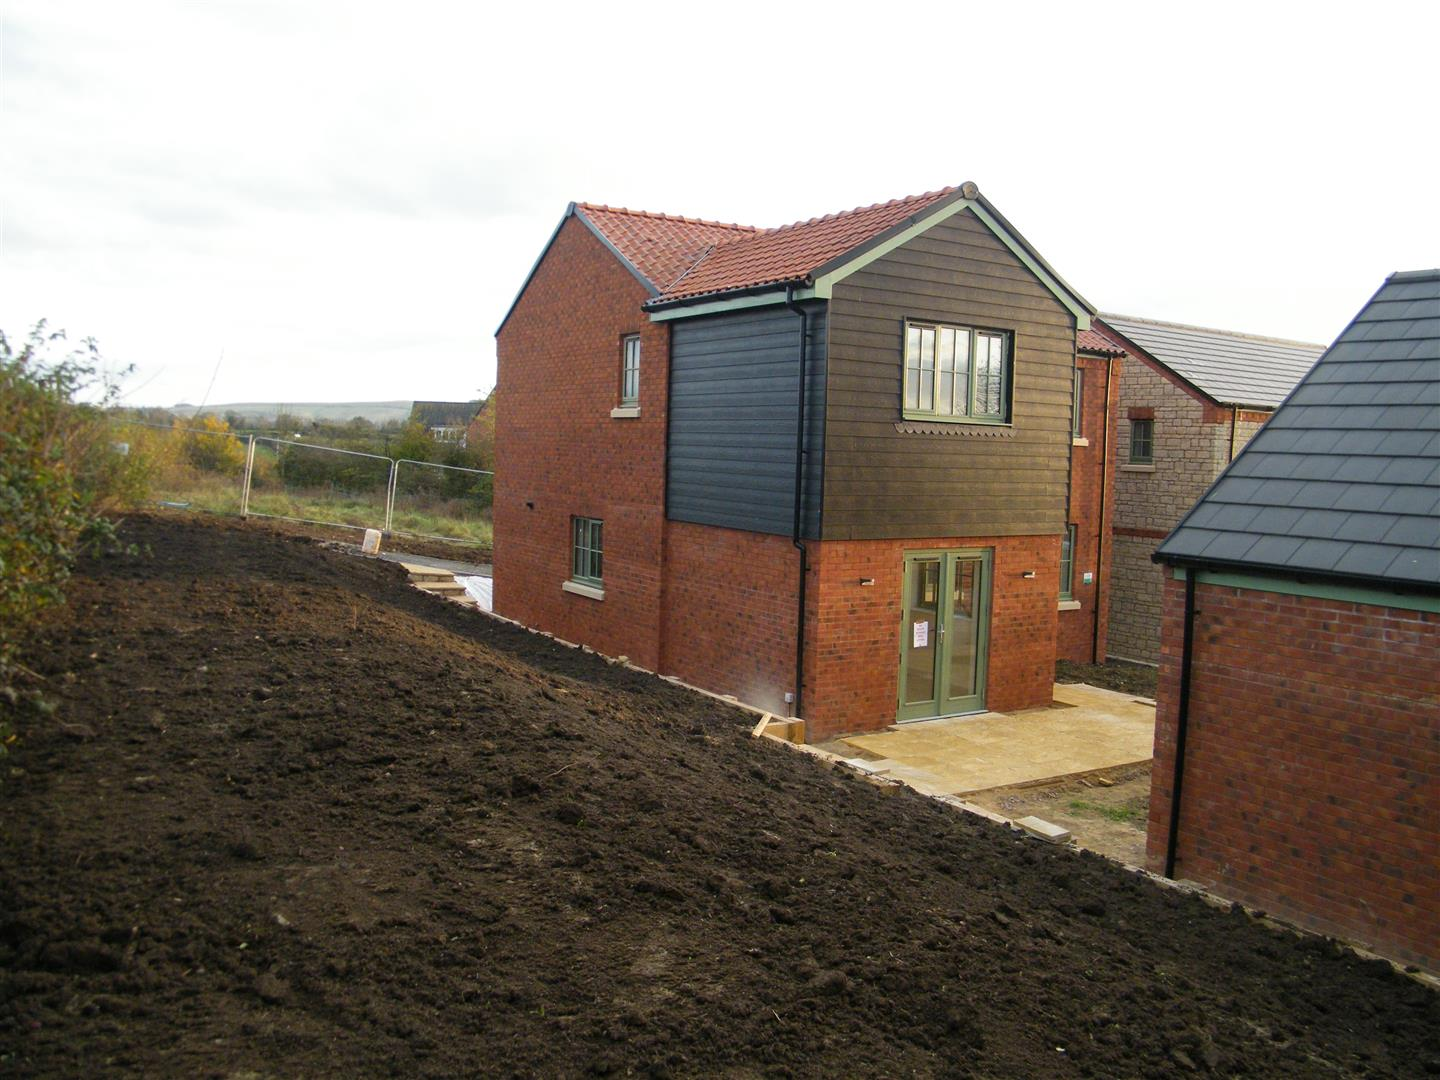 4 Bedrooms Detached House for sale in The Coleridge, Bell Meadow, Sand Pit Road, Calne